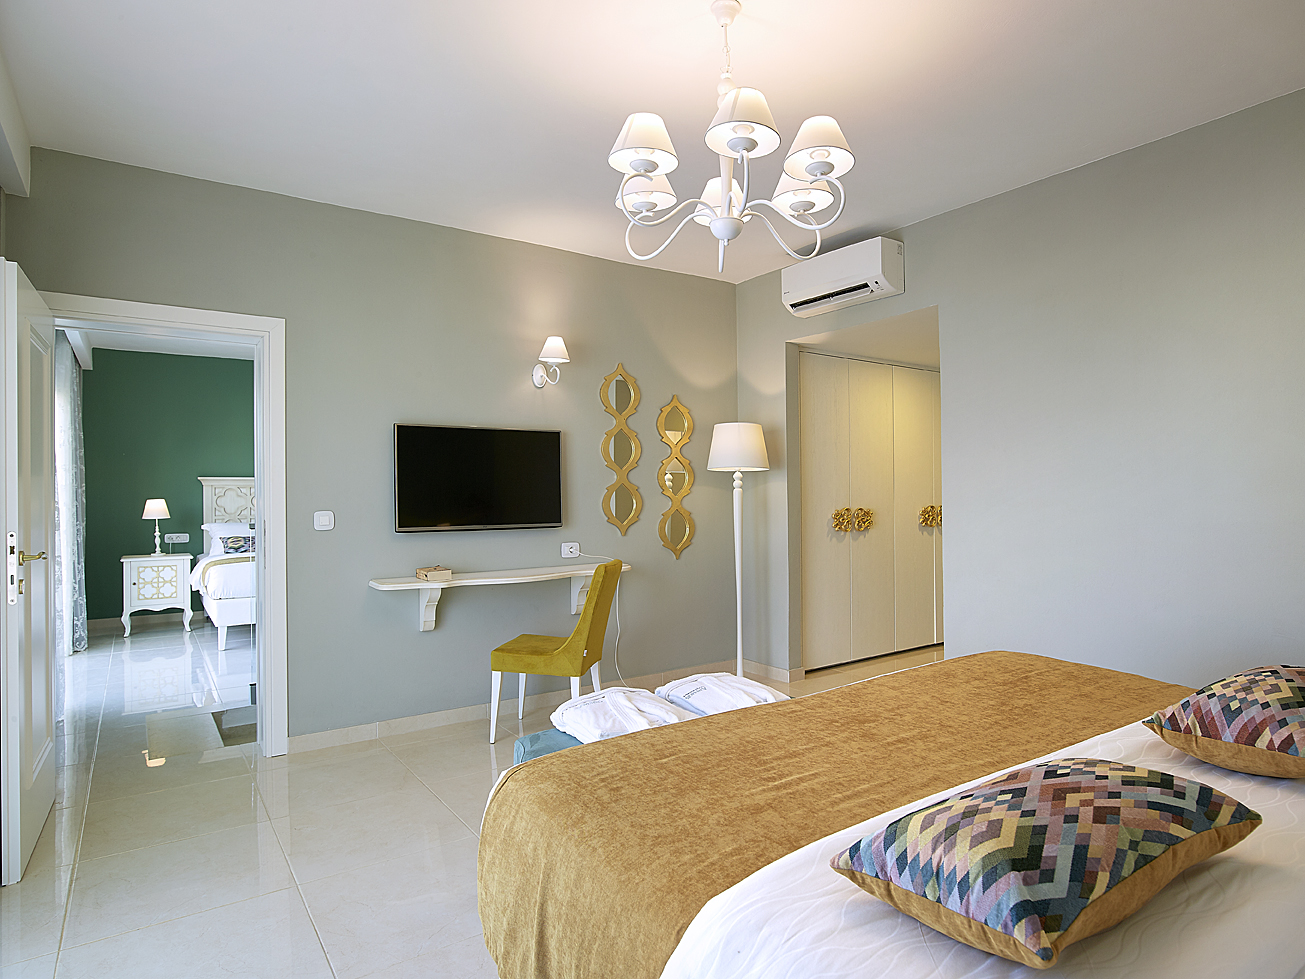 Grand Family Suite: Perfect For Family Holidays At Anemos